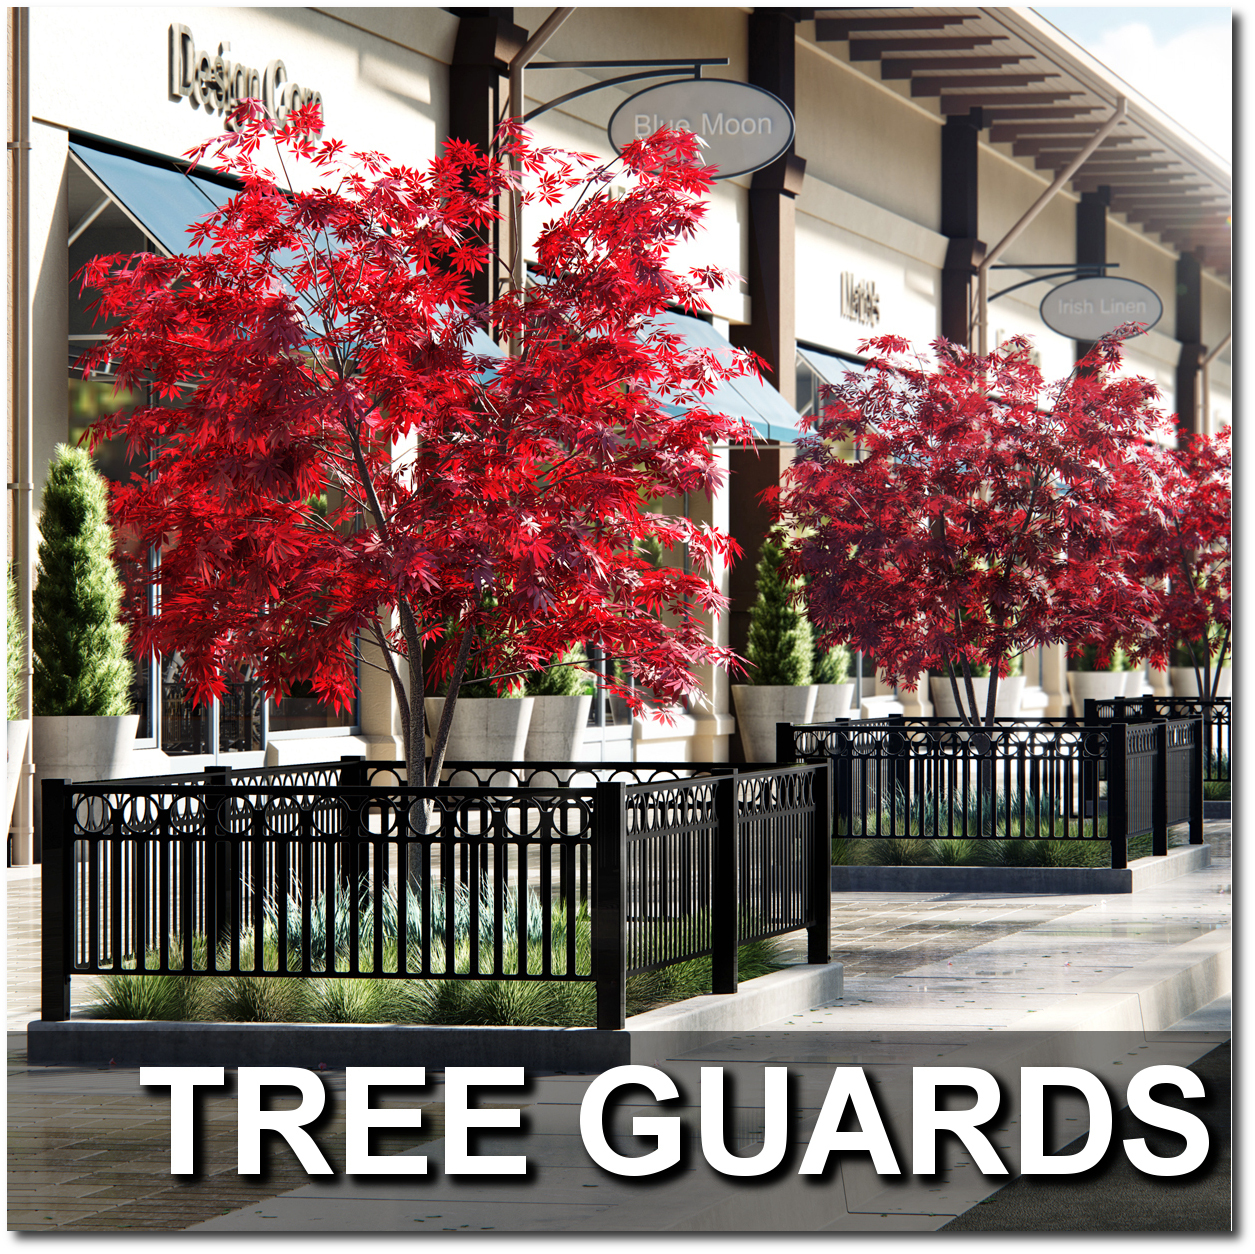 Guardian Tree Guards